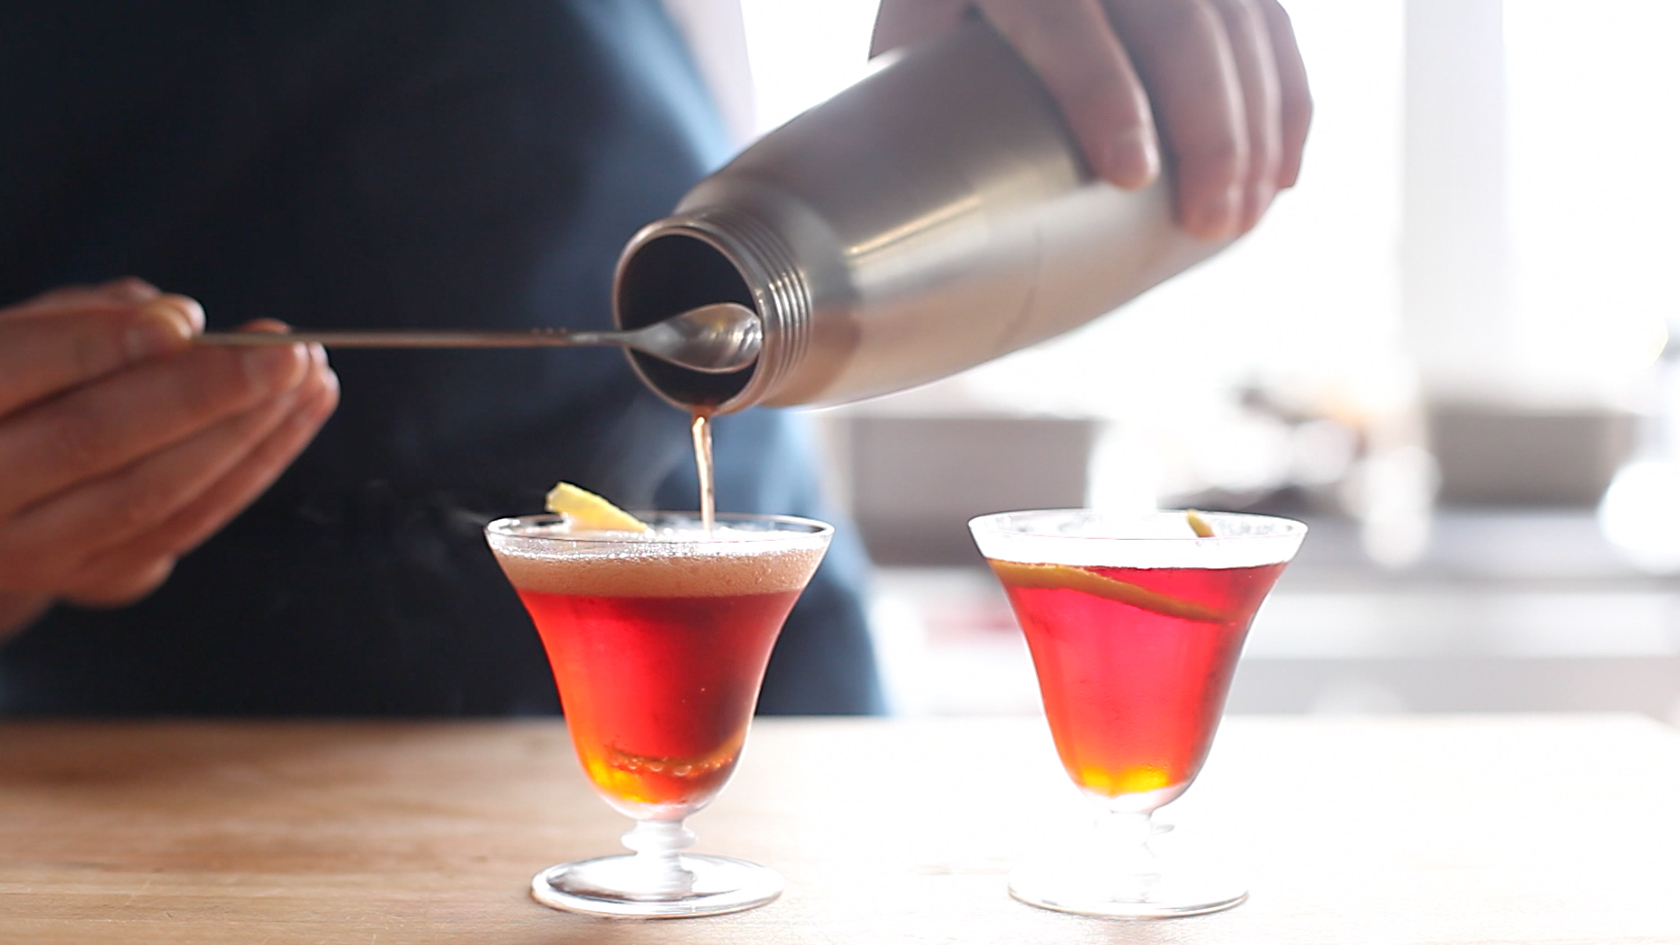 Video: How to Make a Fizzy Negroni